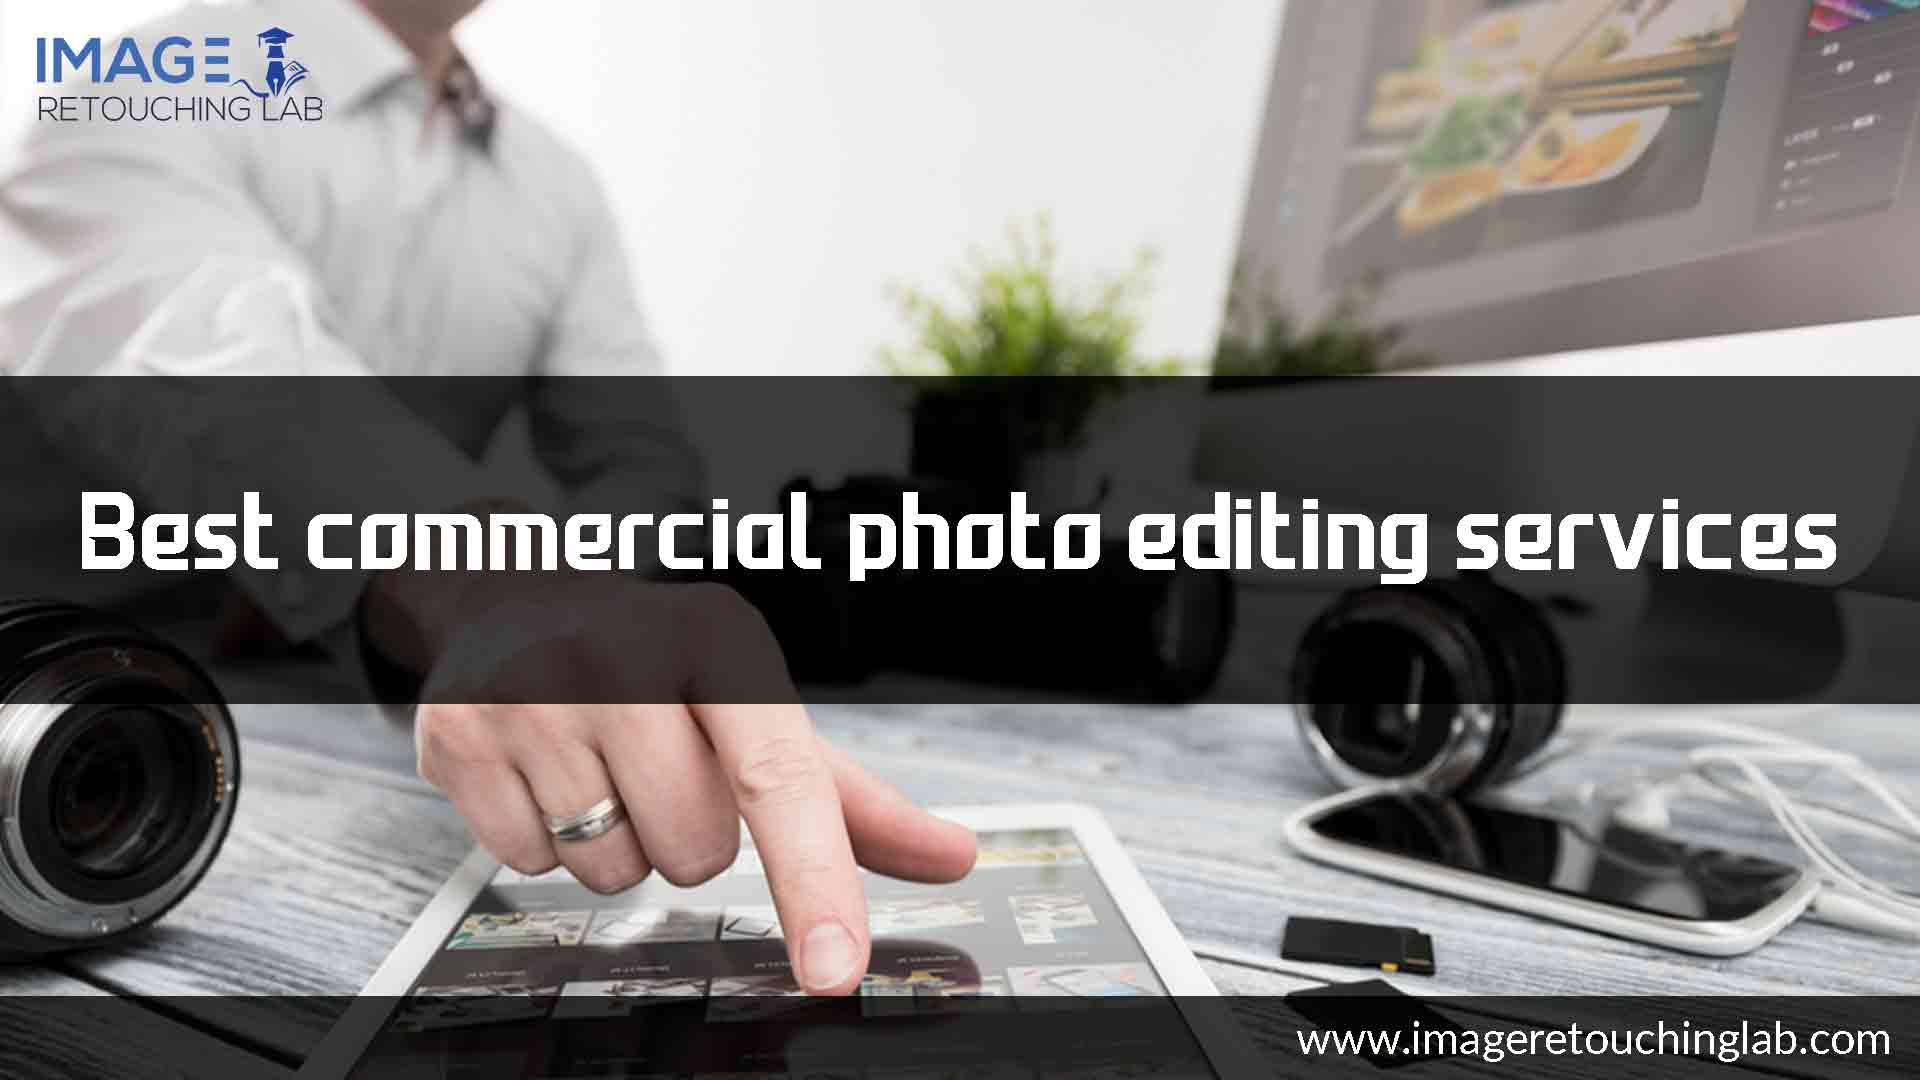 Best Commercial Photo Editing Services